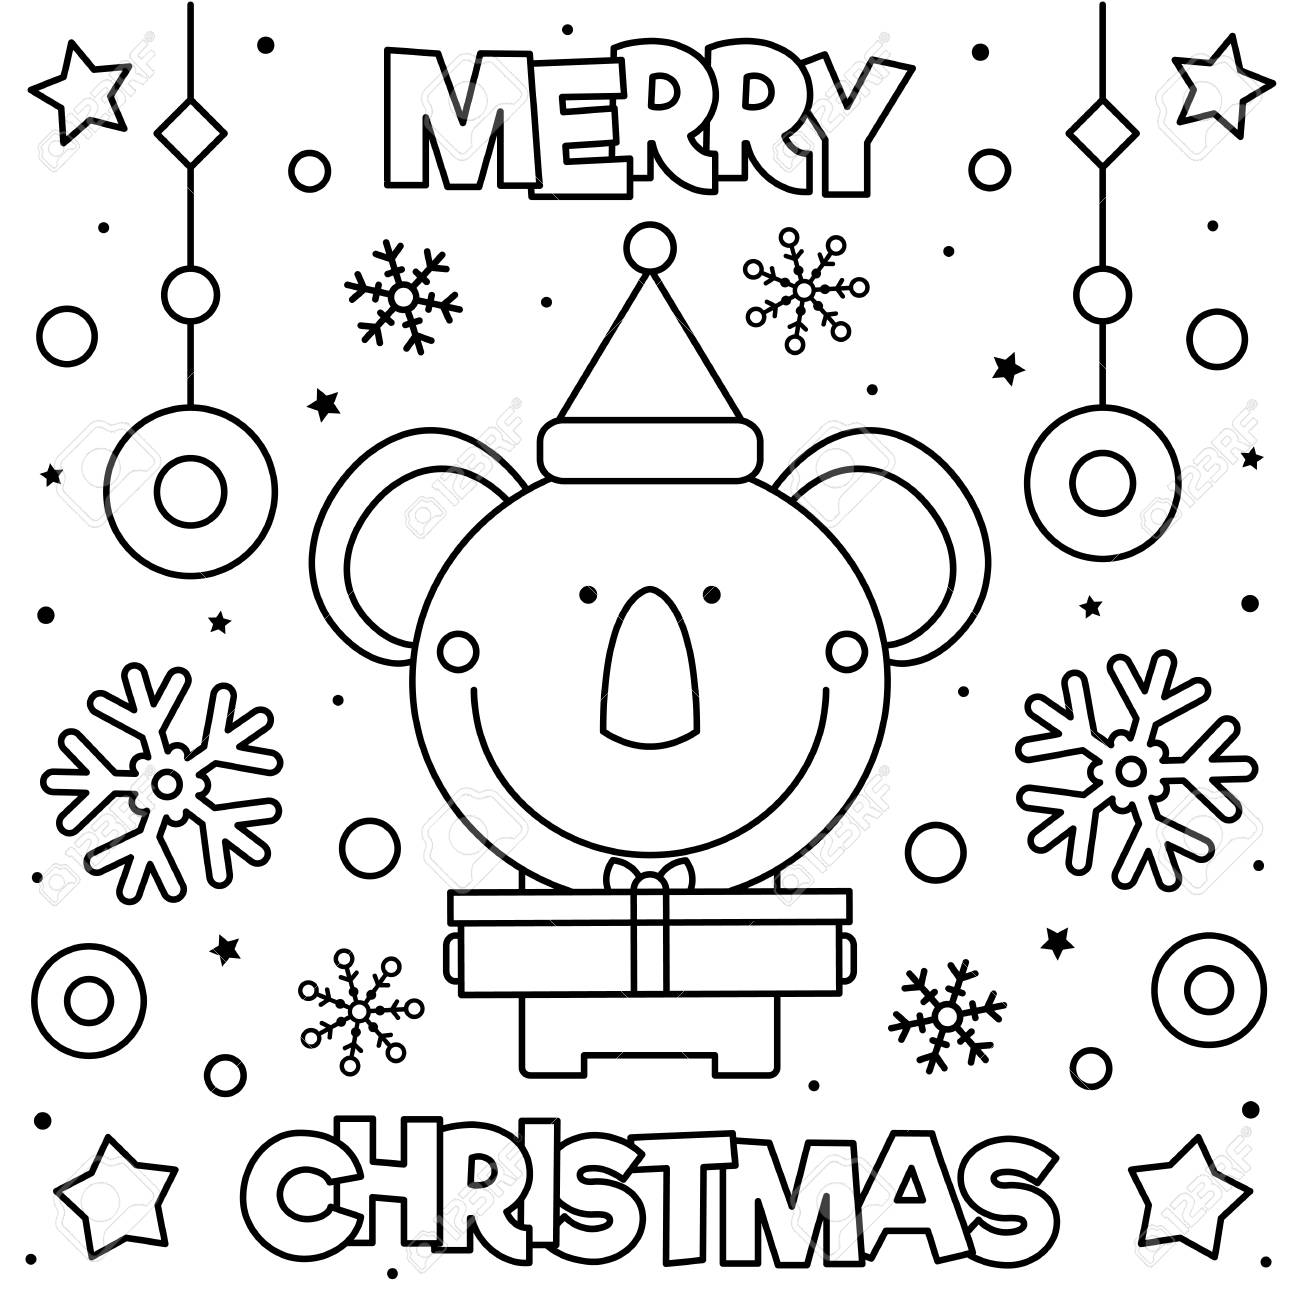 Merry Christmas Coloring Page Black And White Vector Illustration Royalty Free Cliparts Vectors And Stock Illustration Image 127249155